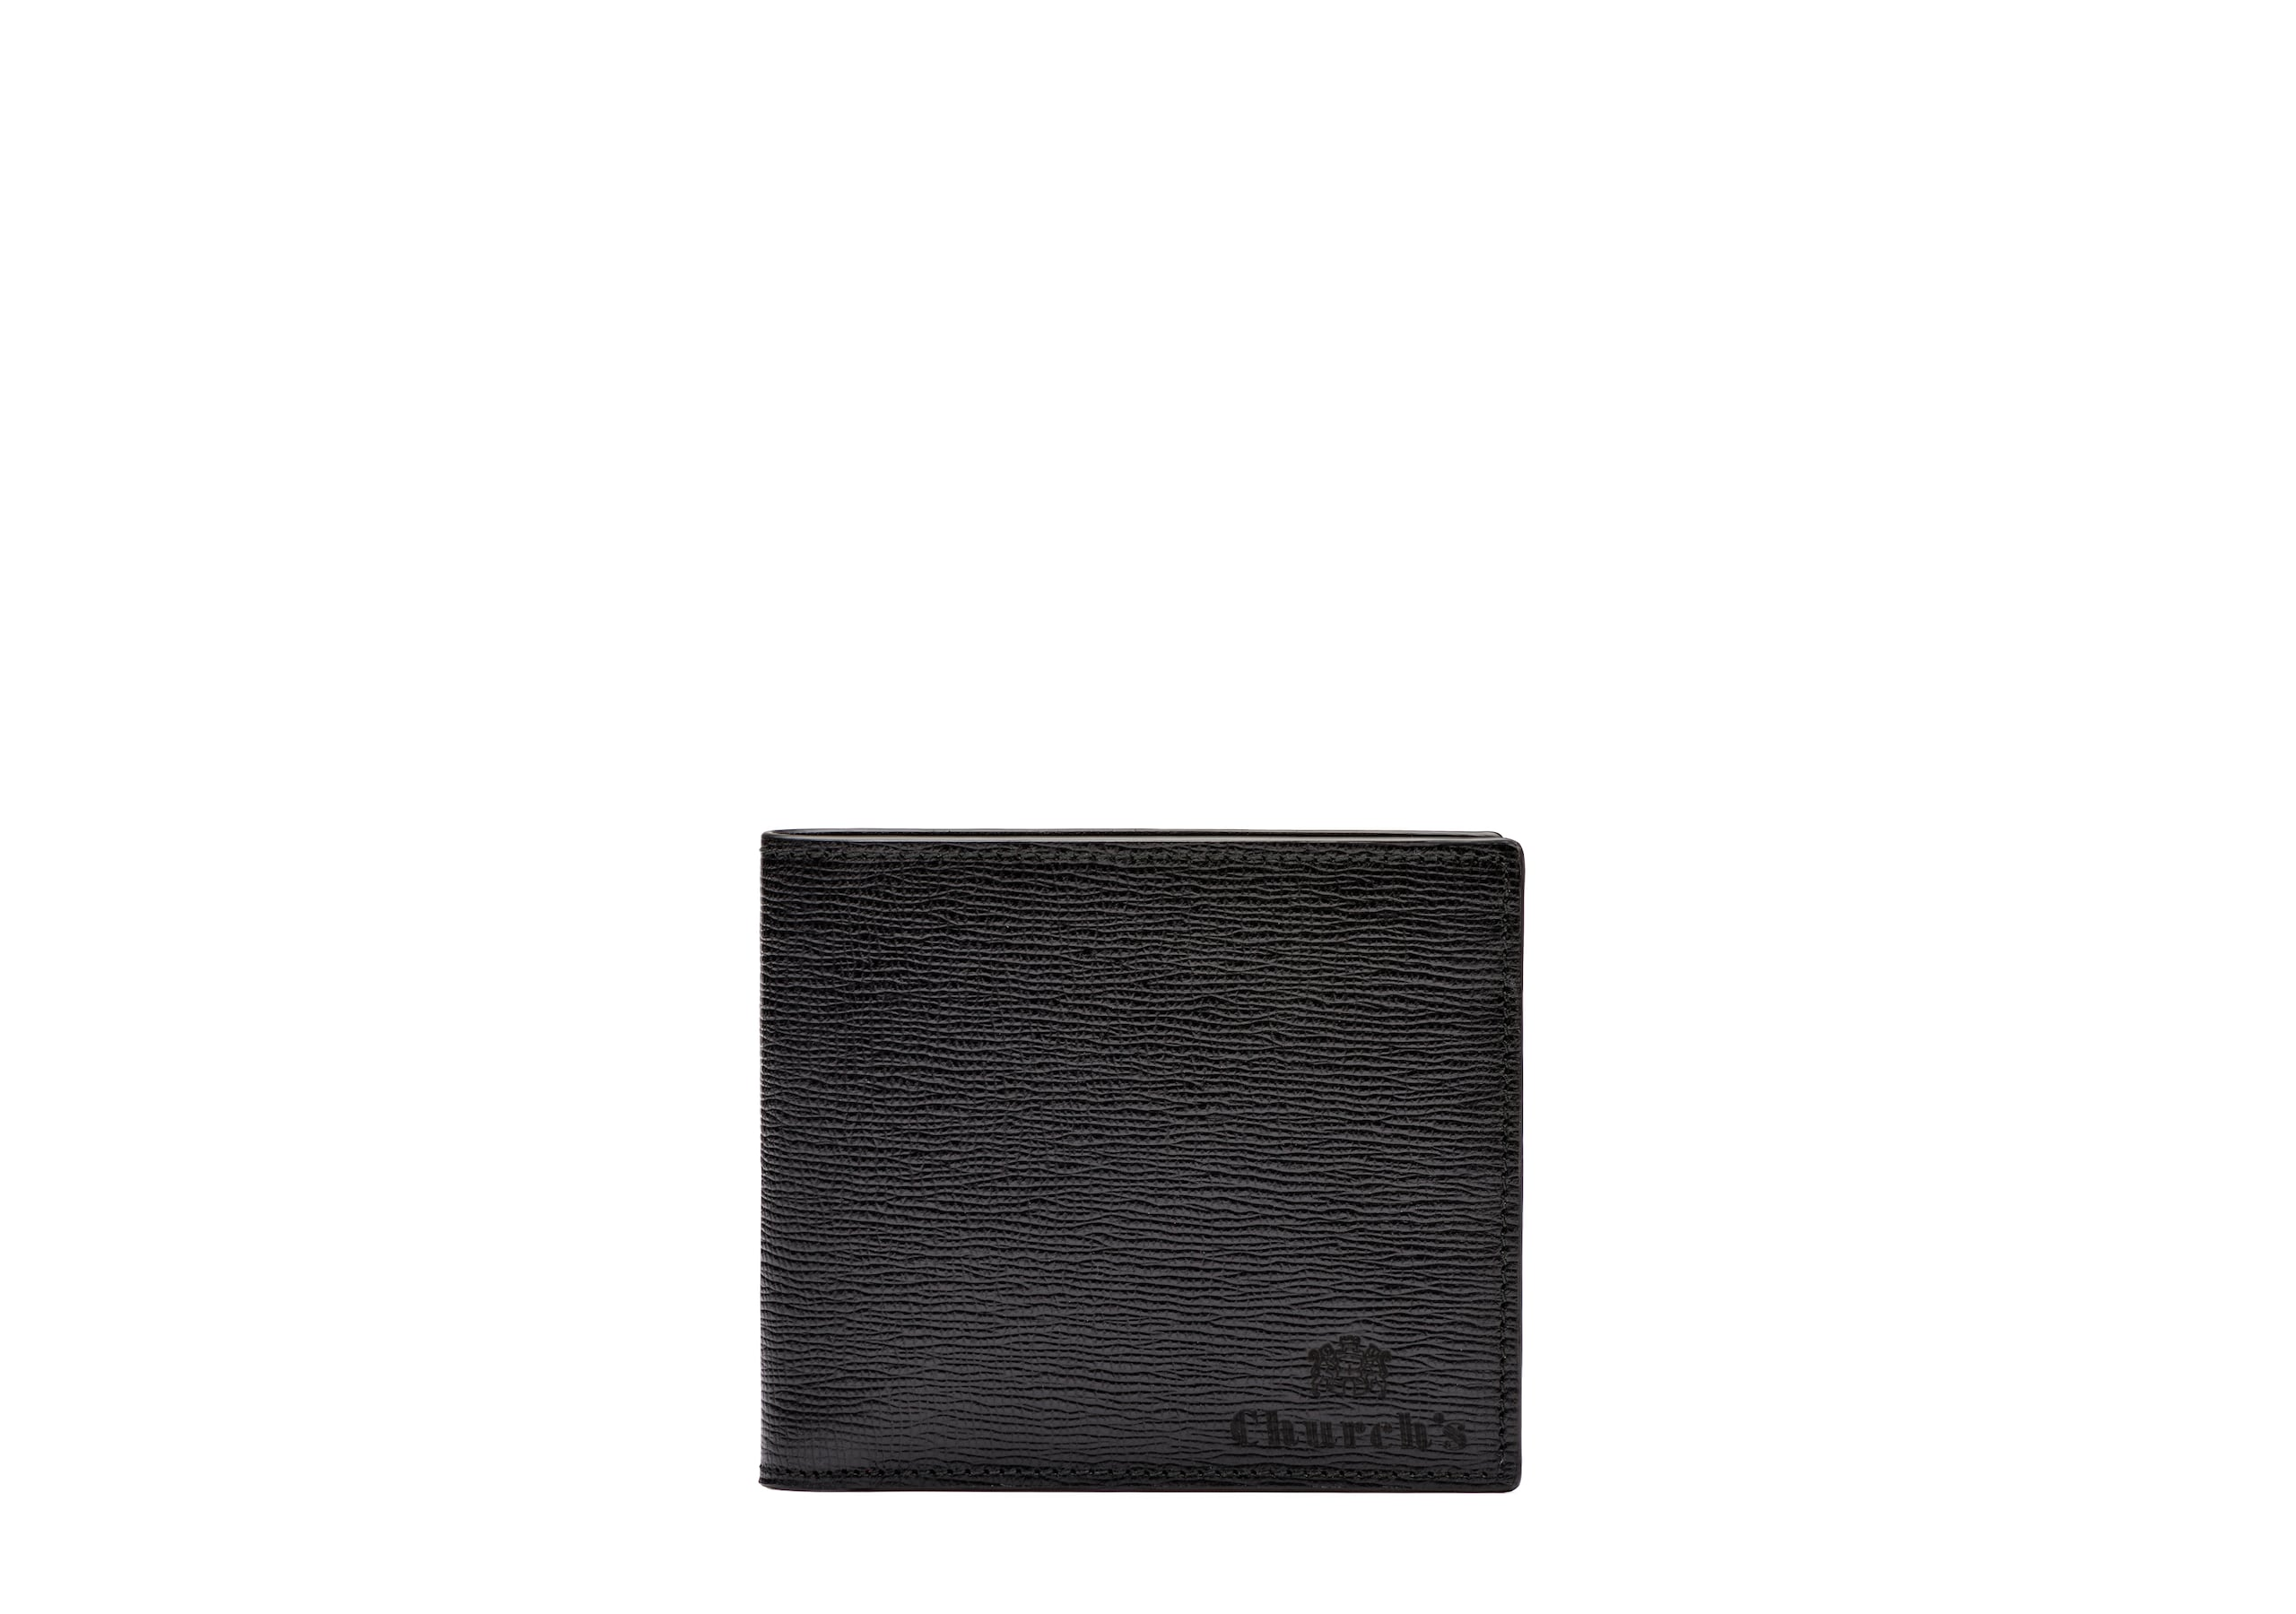 Billfold coin wallet Church's St James Leather 4 Card & Coin Wallet Black